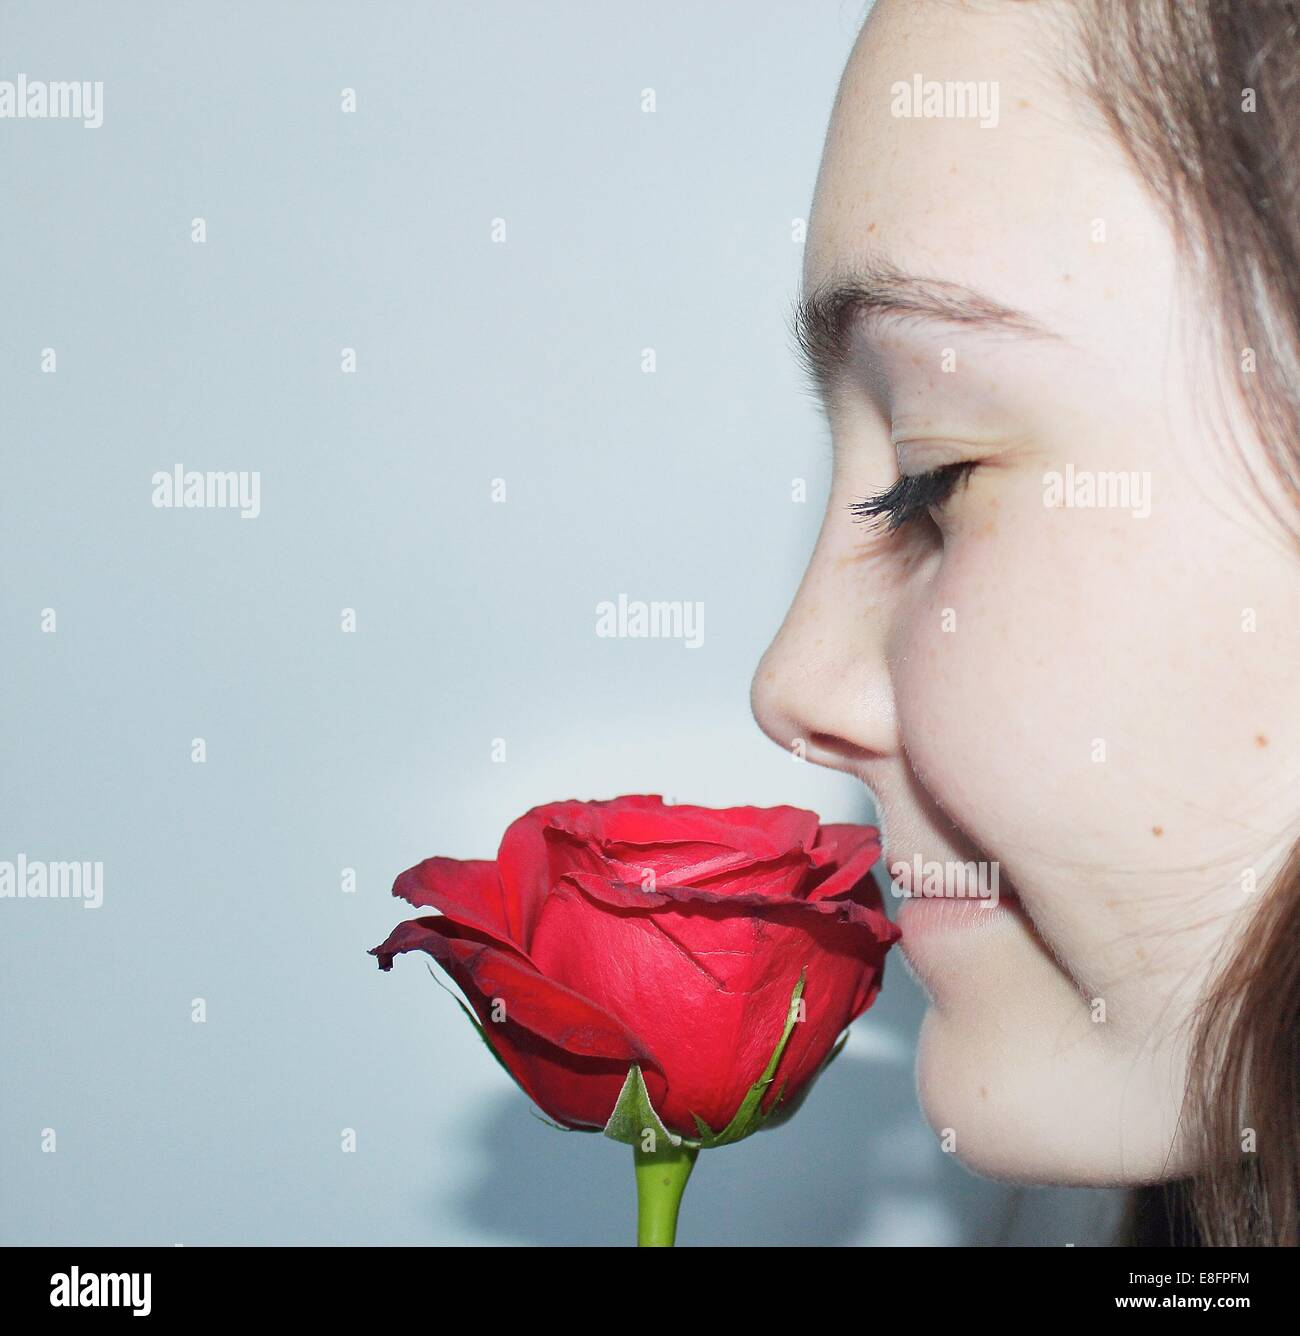 Close-up portrait of a woman with eyes closed smelling a fleur rose Photo Stock